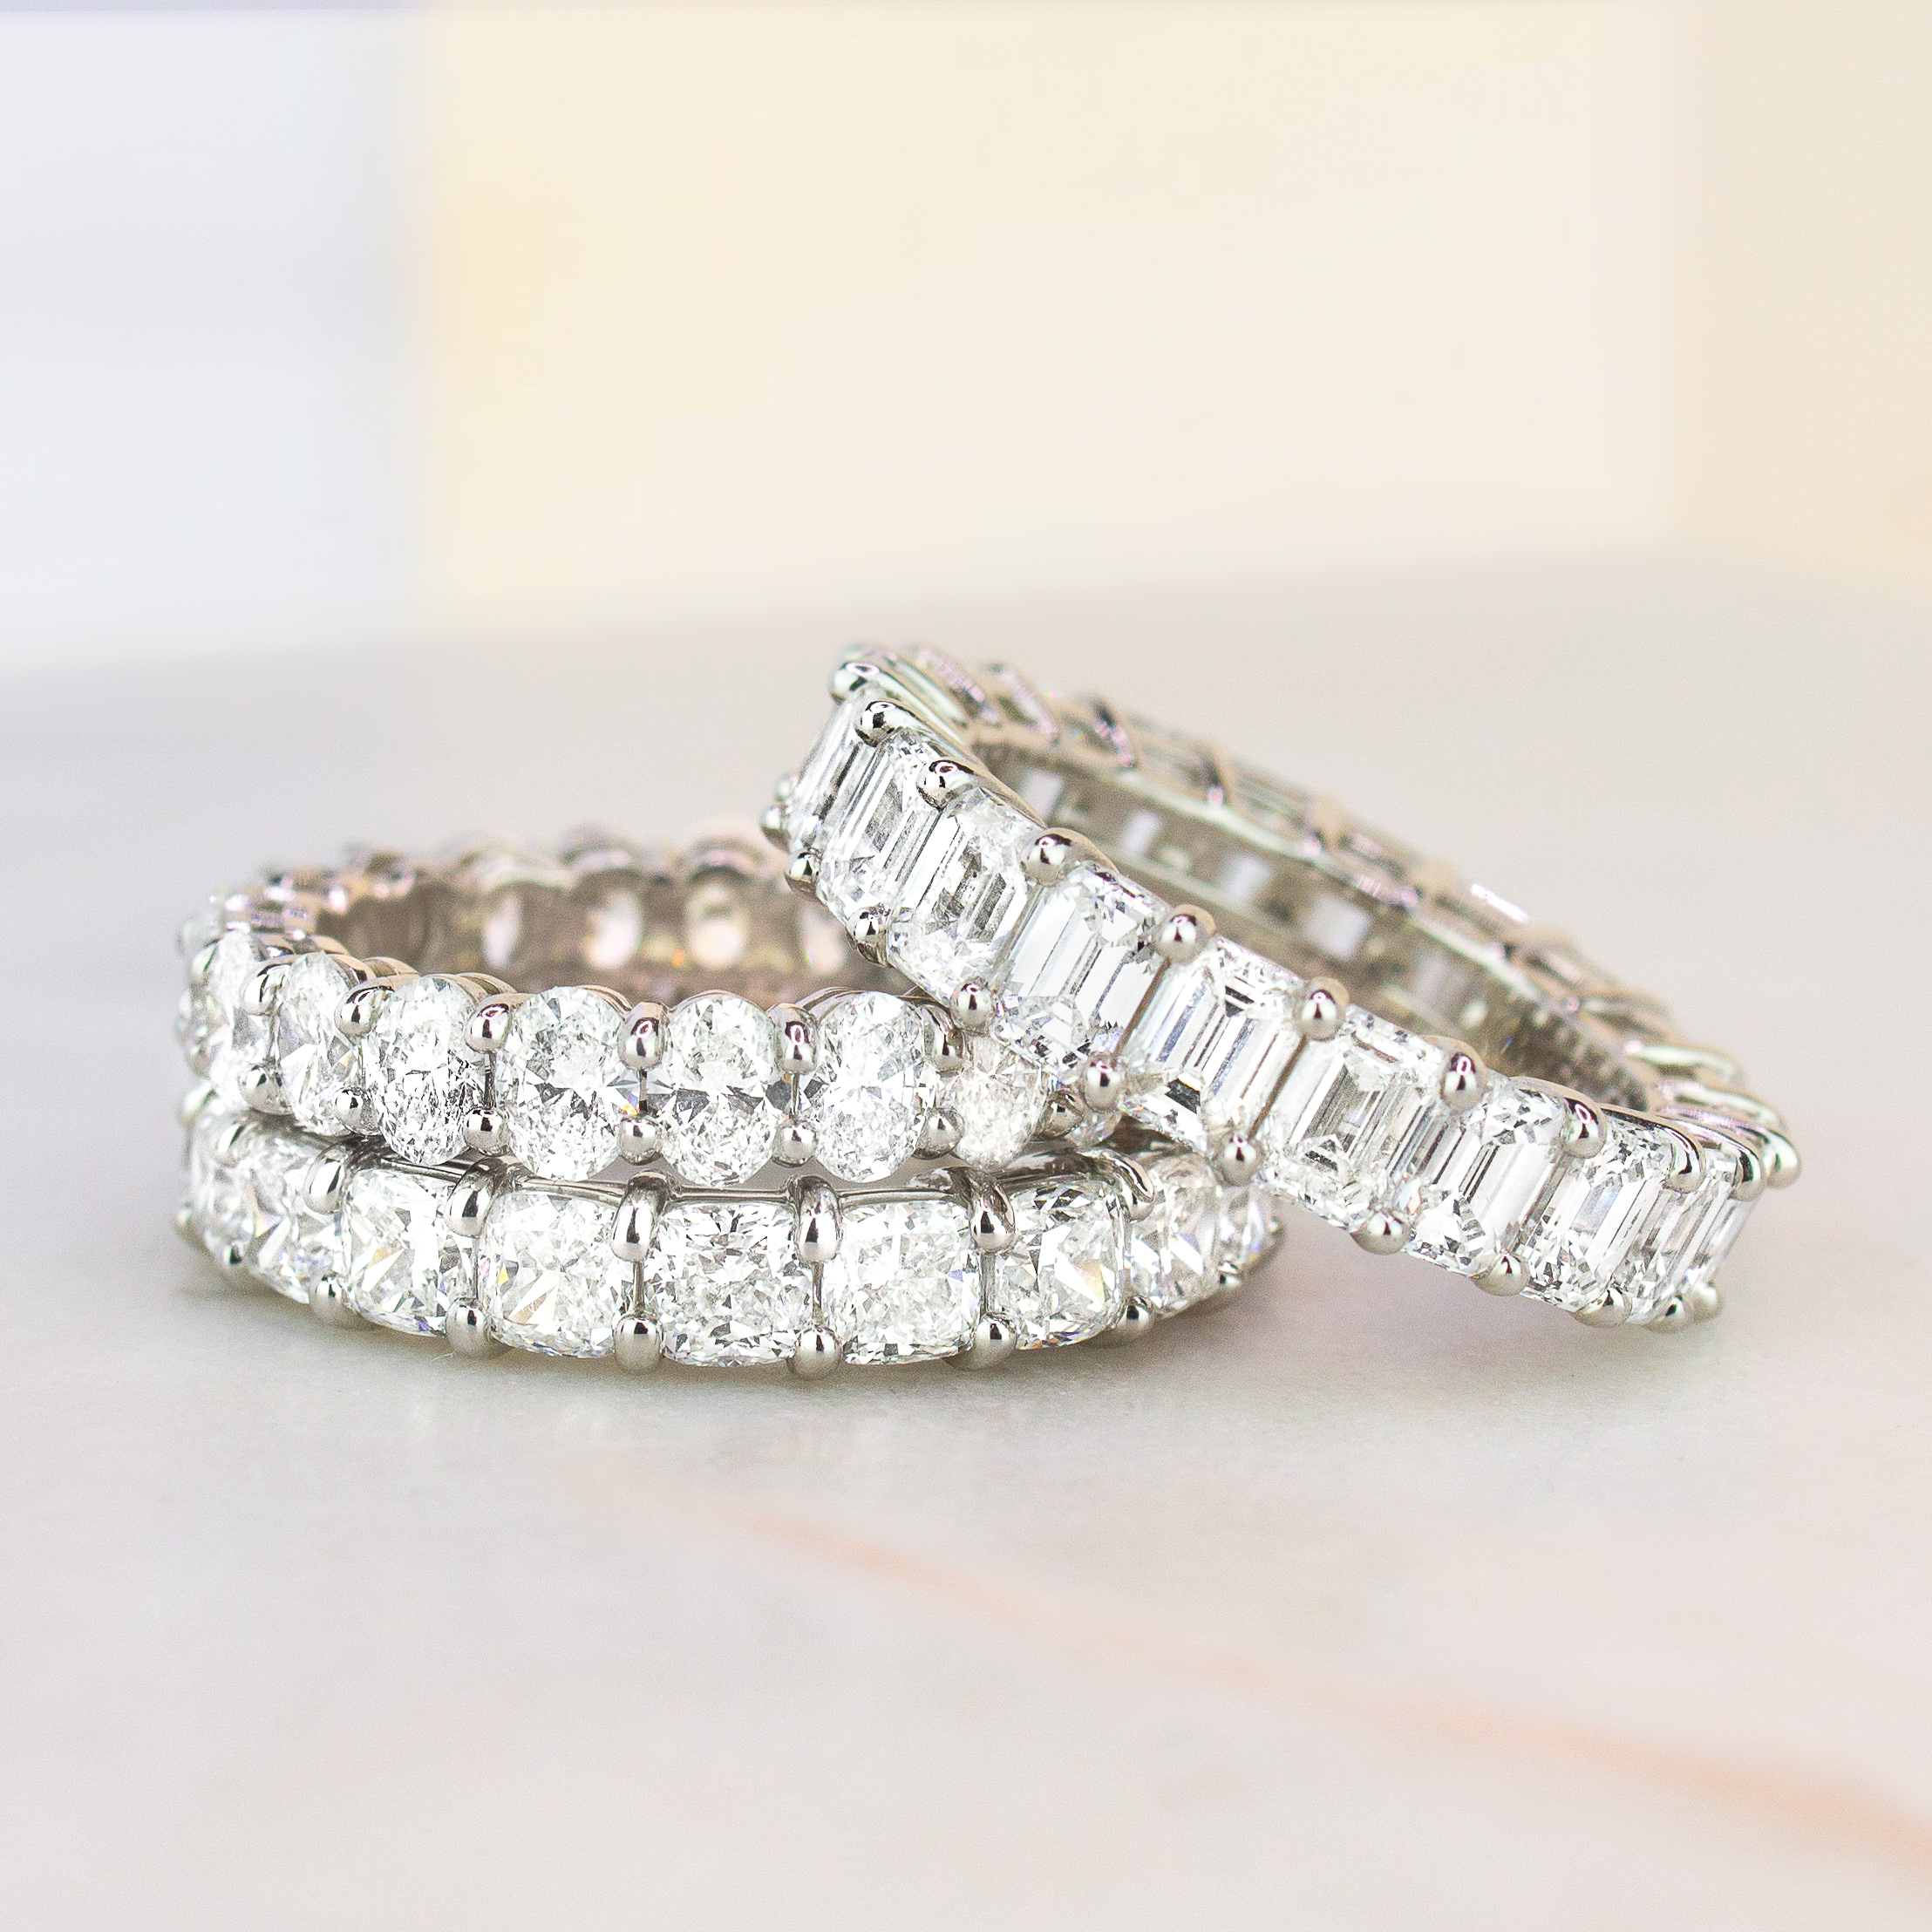 13 Diamond Wedding Bands That Can Be Used As Engagement Rings Brilliant Earth Blog